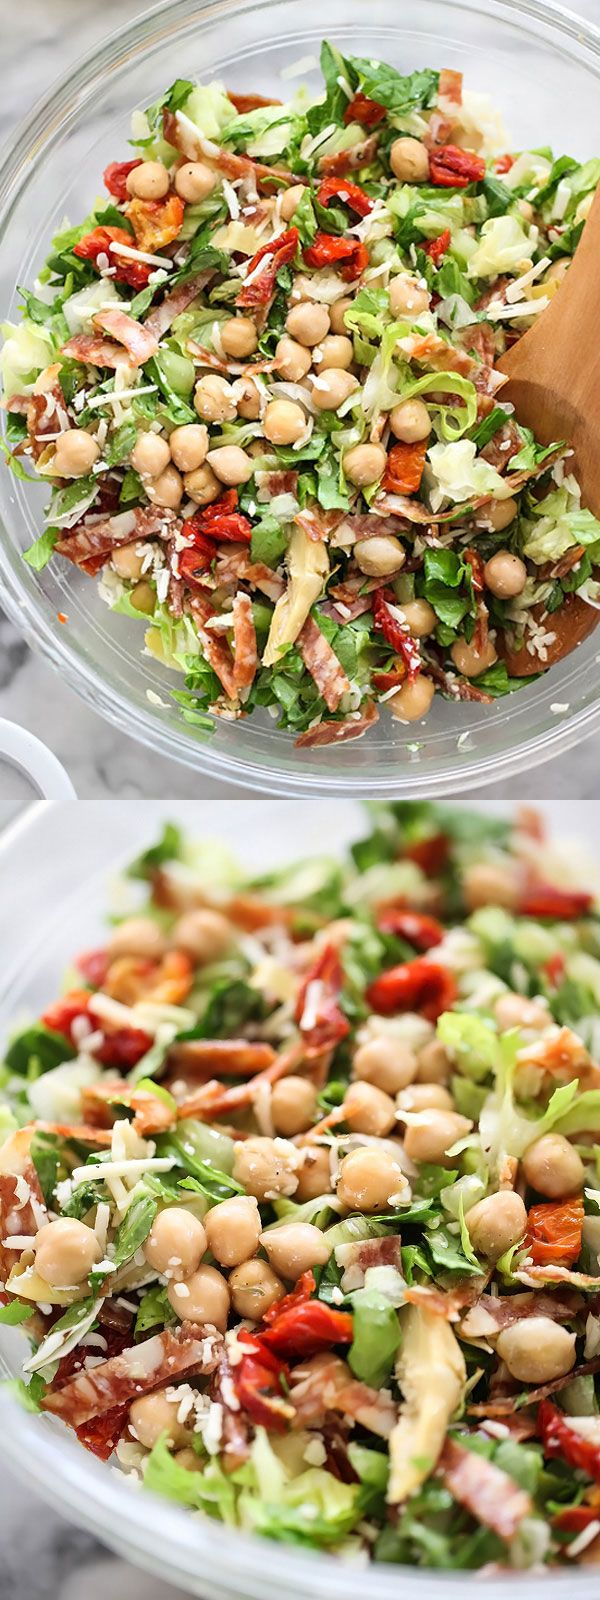 This salad is based on the famous La Scala salad in Los Angeles with the BEST dressing topping garbanzo beans, salami, artichoke hearts and sun dried tomatoes. It's one of my absolute favorites any time of year. | foodiecrush.com